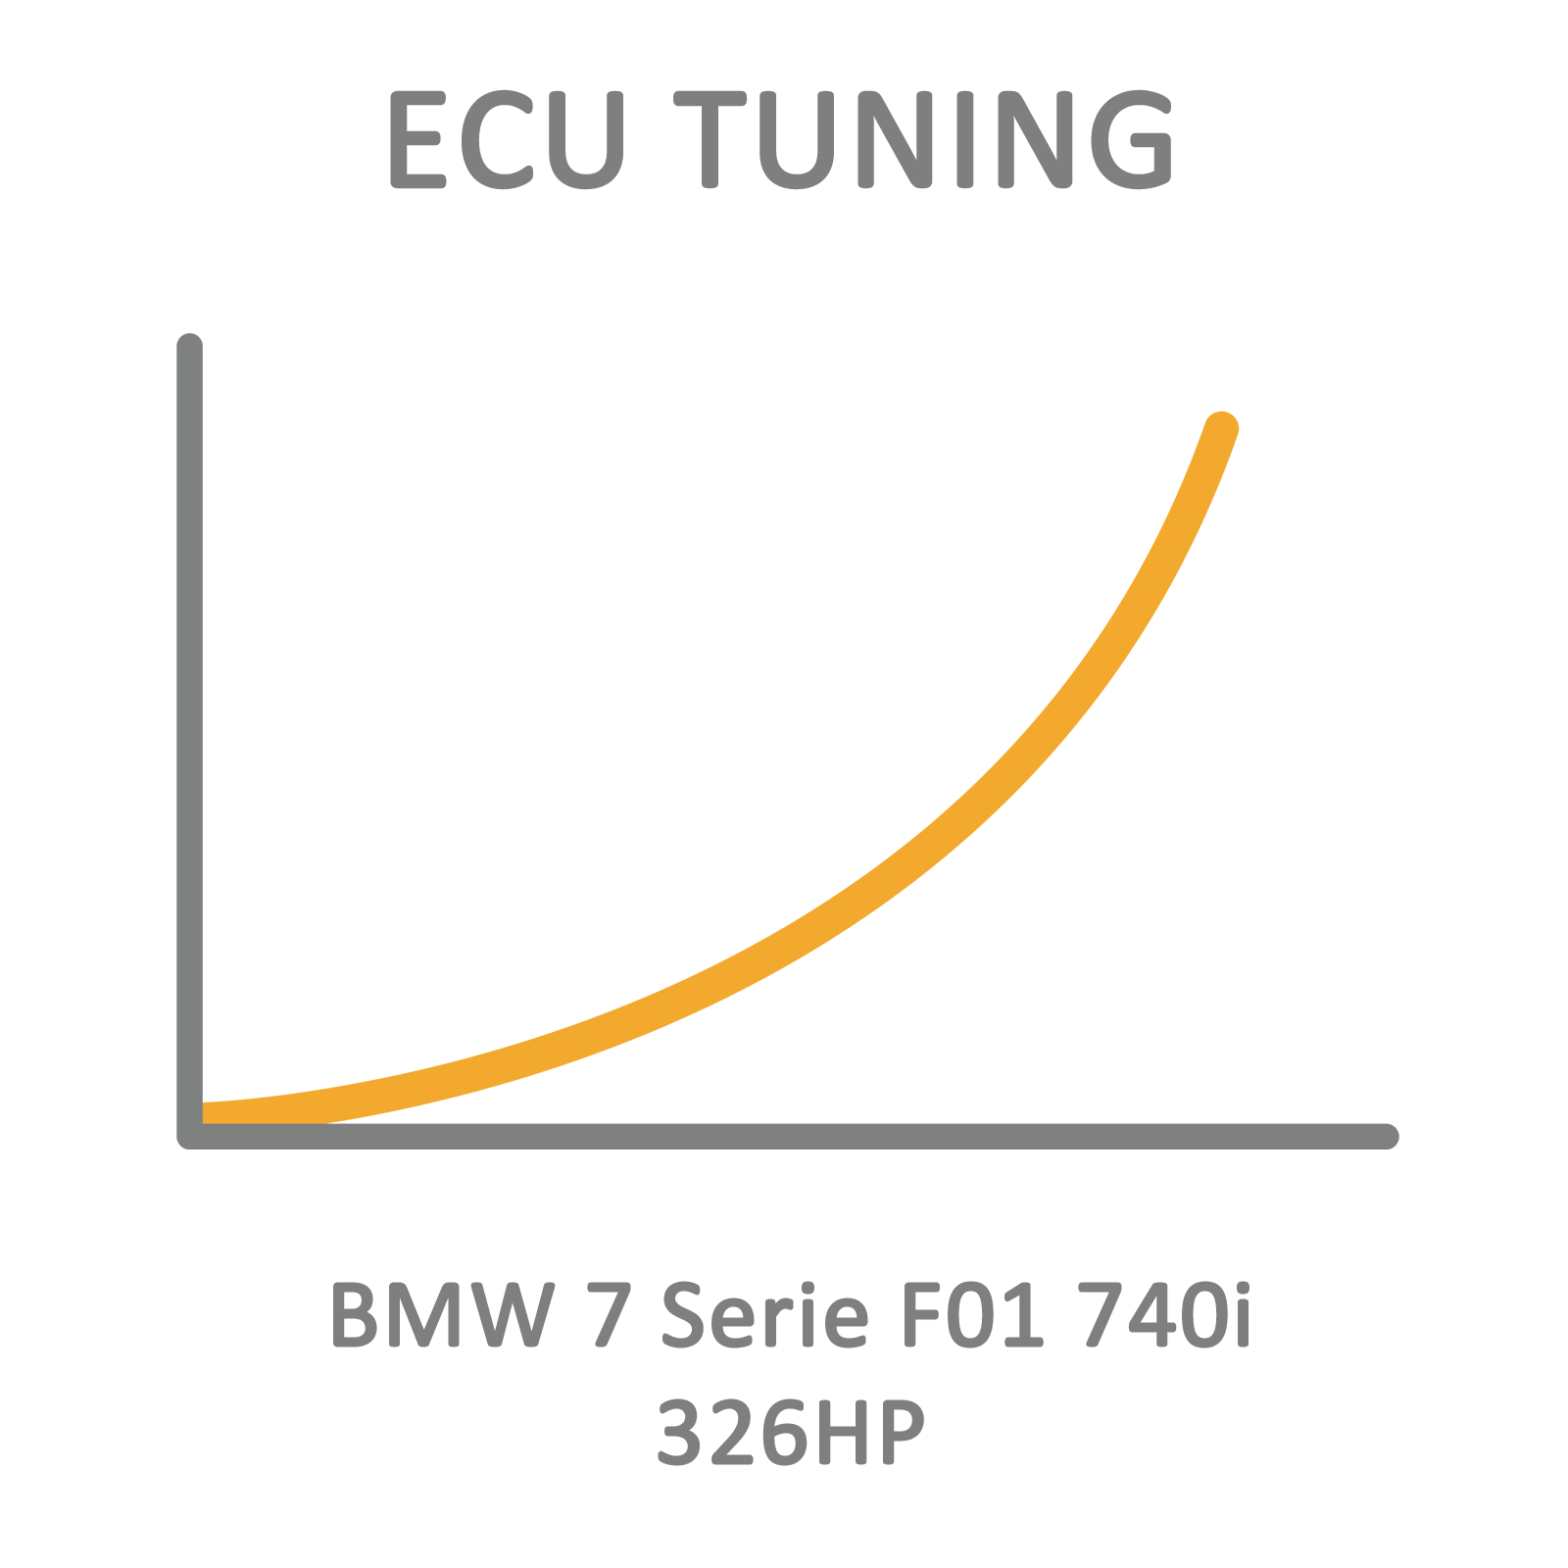 BMW 7 Series F01 740i 326HP ECU Tuning Remapping Programming